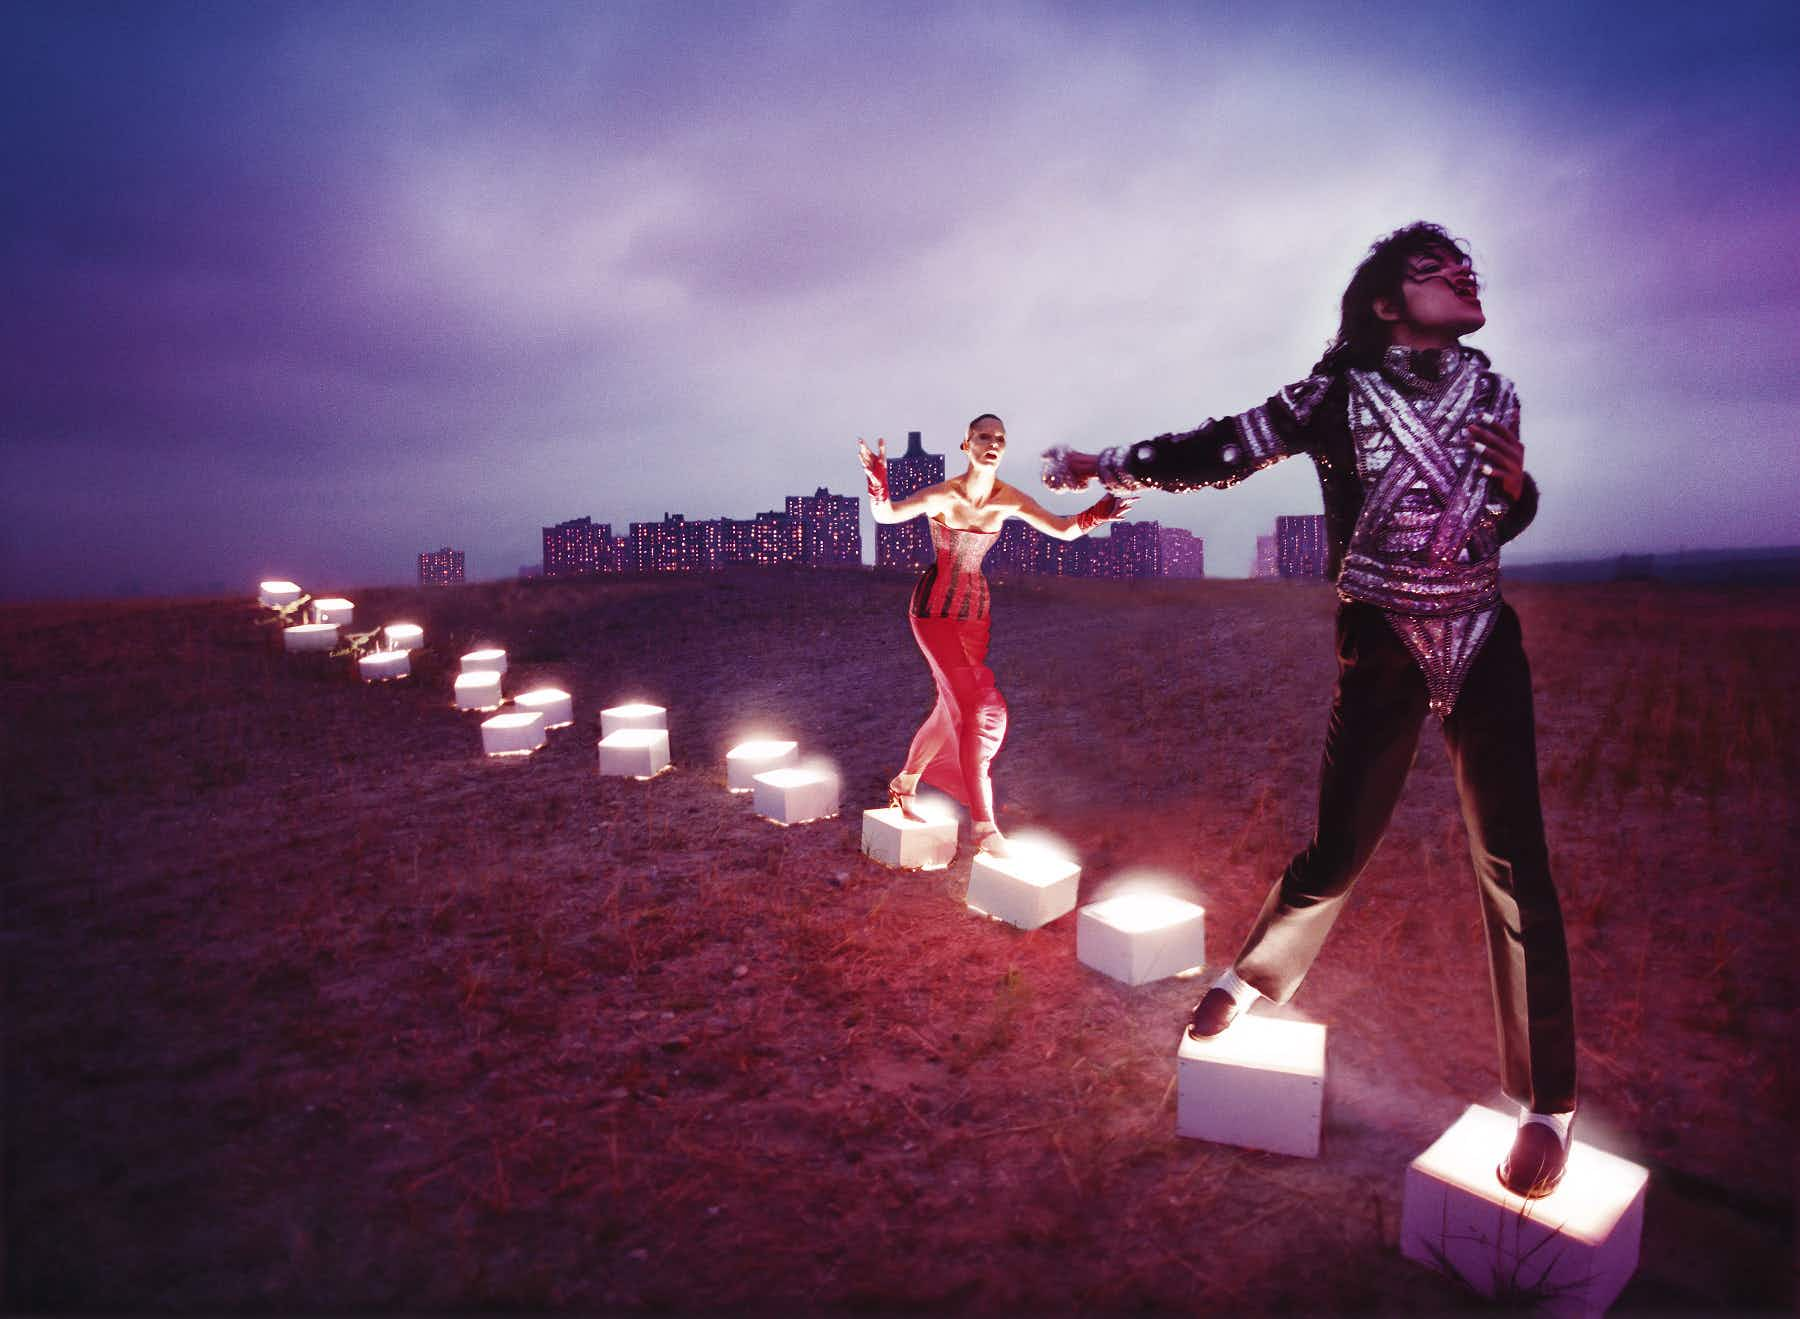 Get a sneak peak at the new Michael Jackson exhibition